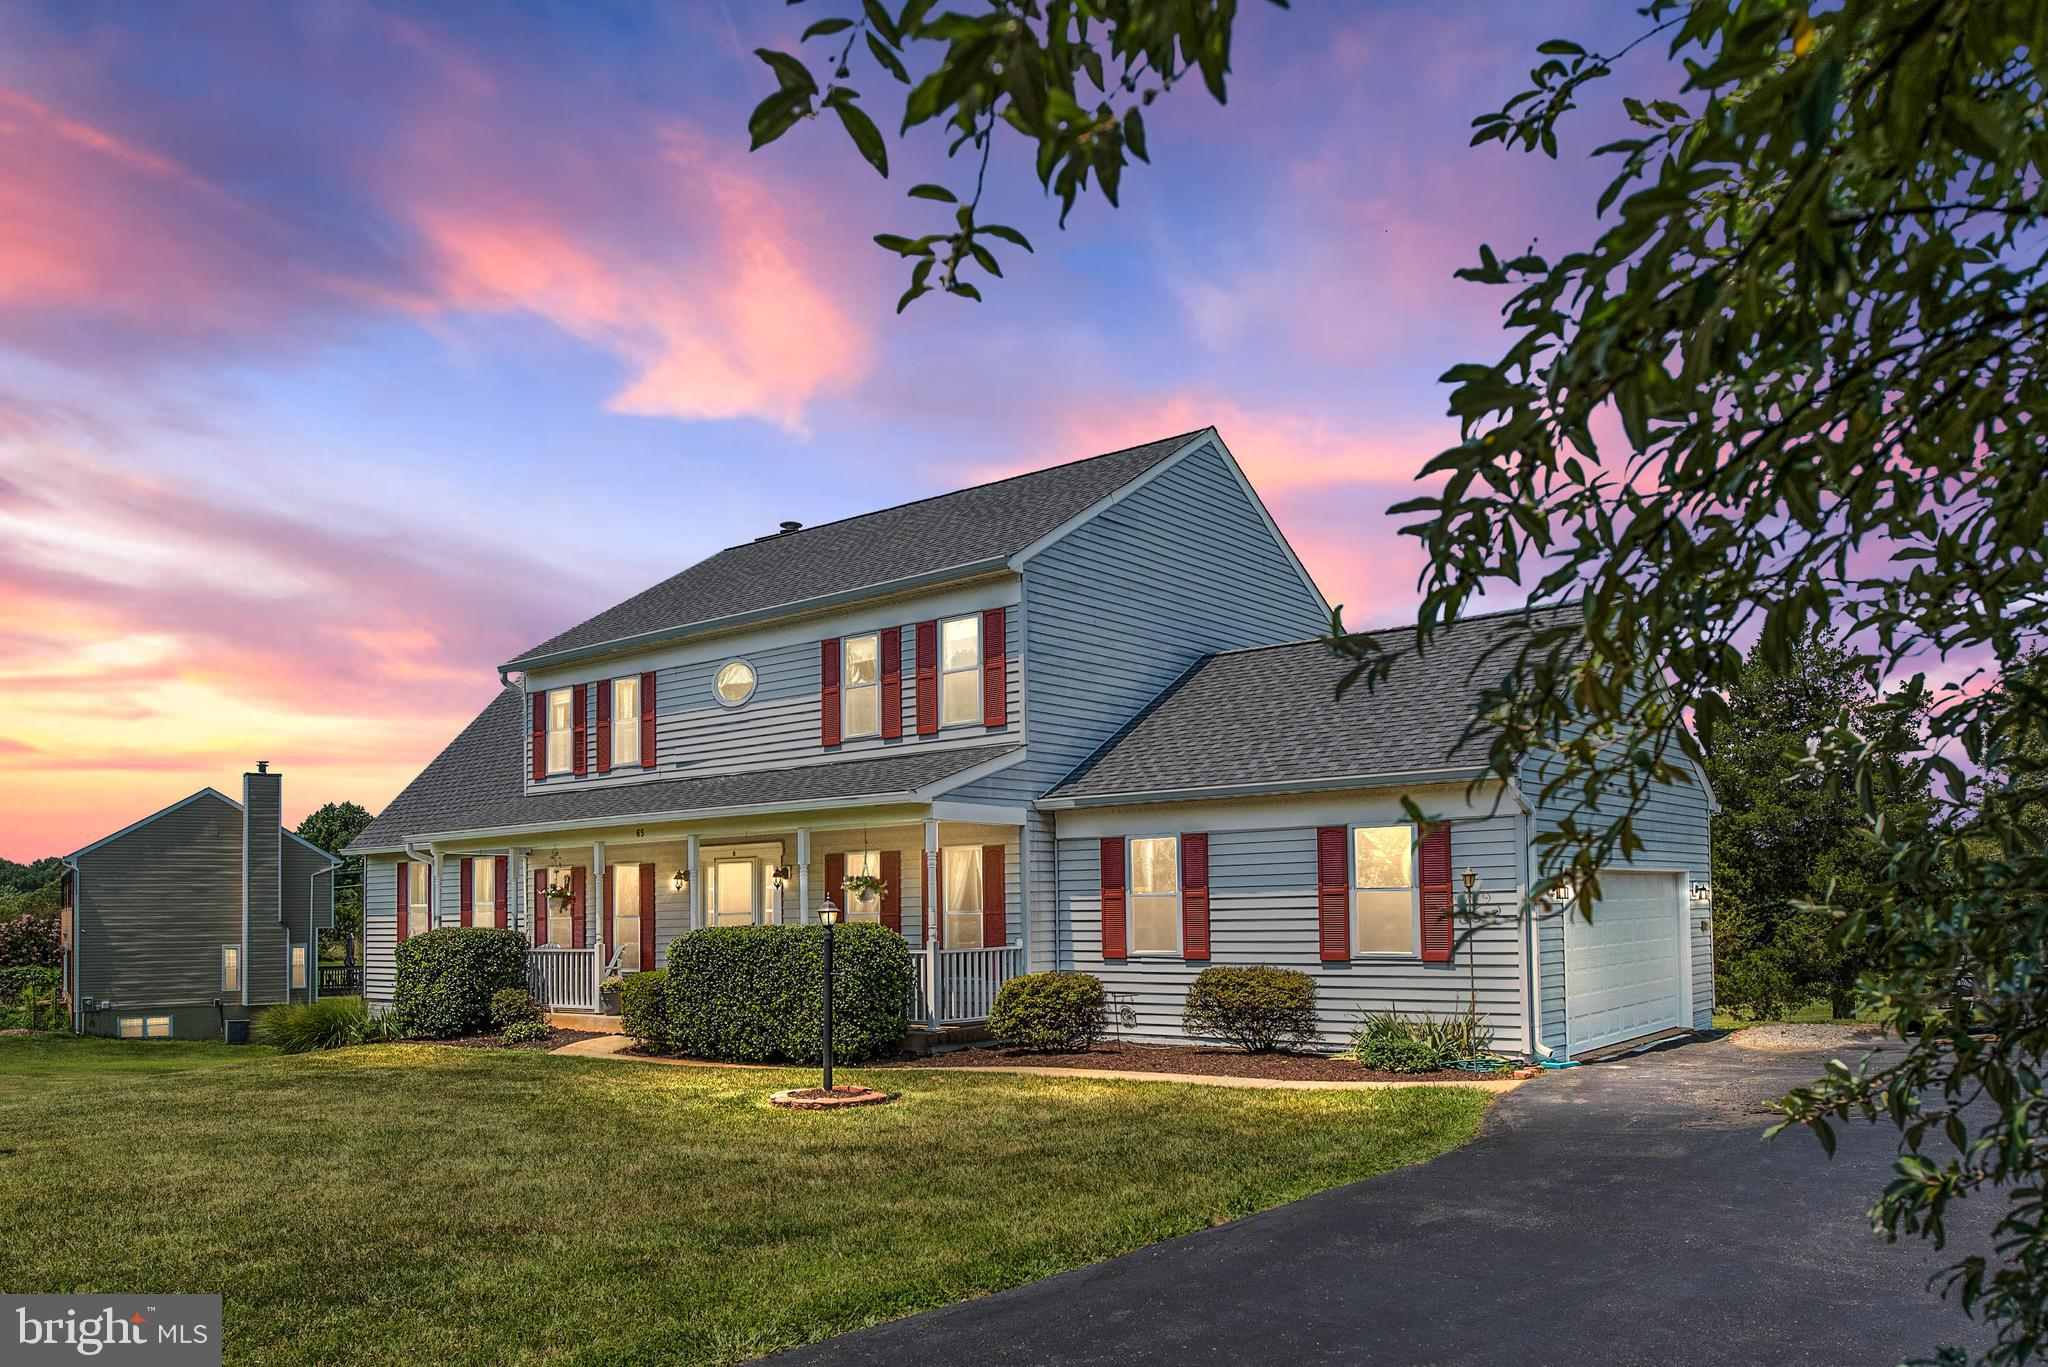 Back on the market at no-fault of the seller.  Don't miss your second chance! This one-owner Colonial with Two-Story Addition, Walk-out Basement, and 3+ Acres, will Provide you Lots of Room (4160 total sqft) with NO HOA.  Enjoy the Sunsets from the Rear Deck (500+ sqft) or while Relaxing in one of the Jetted Seats in the large In-Ground Pool (16'x32' w-walk-in stairs).  The Pool and Garden Sheds both have Water and Electricity Connections and the Pool Shed is pre-wired for a External Home-Generator.  The Master Suite includes Walk-In Closet and a Remodeled Master Bath (2016) w-Large Tub and a Separate Shower.  3 additional Large Bedrooms and Remodeled Hall Bathroom (2014) on Second Floor.  (Master and 1 of the bedrooms have a secondary access for possible nursery or sitting room.)  Formal Living Room and Dining Room featuring Hardwood Floors, & Crown Molding.  Large eat-in Kitchen.  Two-Story Addition includes a Large Entertainment Room (500 sqft) with a Pool Table and Bar on the Main-Level and Large Basement Workshop or Office w-private entrance (500 sqft) which was approved by county for use for a home business.  The Walk-Out Basement also Boasts a 3rd Full-Bath, Home Office, Storage, and Laundry.  Propane tank is owned.  Whole-home Rain Soft Brand Water Softening system.  New HVAC (2021), New Garage Door/Opener (2020), New Carpet (2019), and New Roof (2017).  Freshly painted exterior and main floor (2021). Mowing Service will be provided through October.